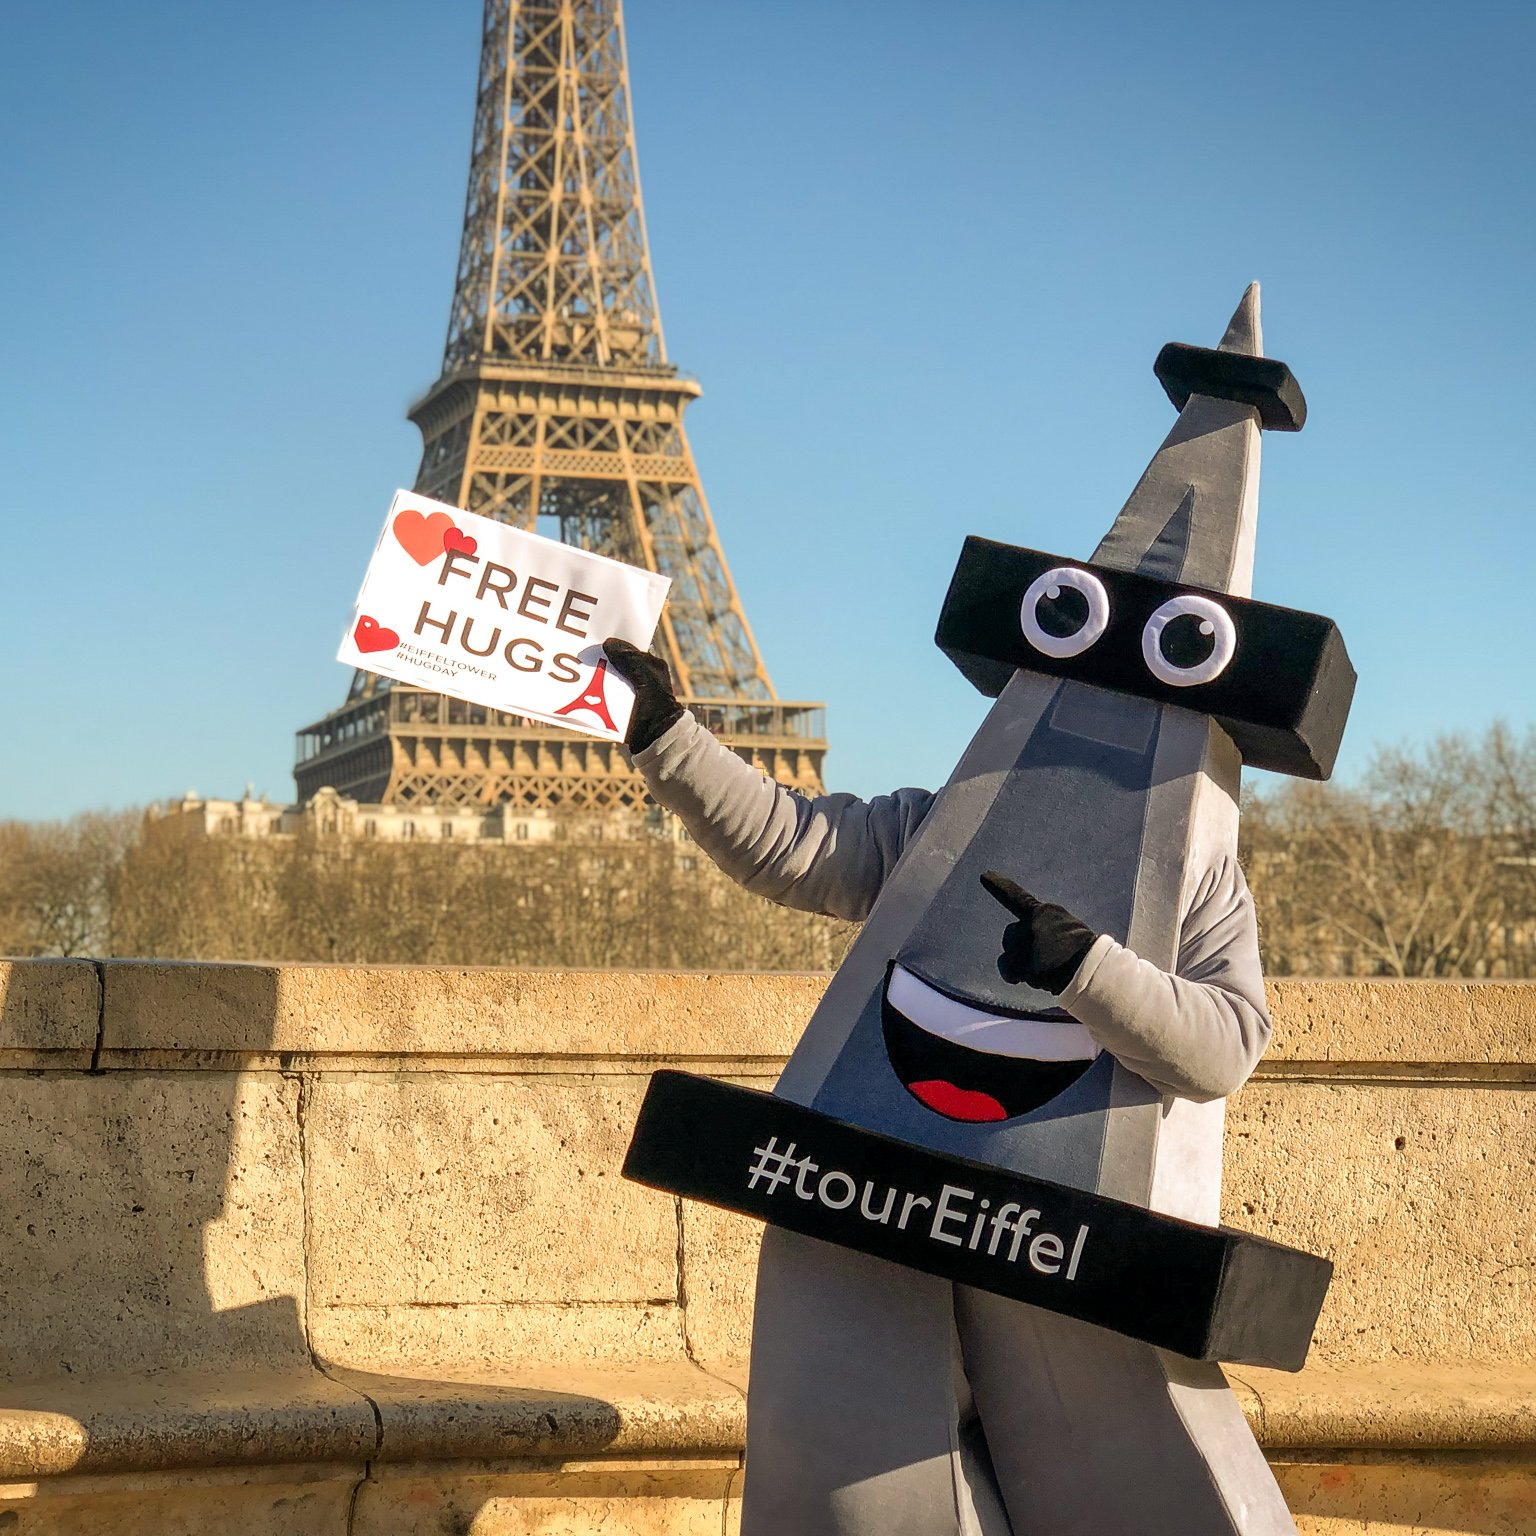 What Events Took Place At The Eiffel Tower In January